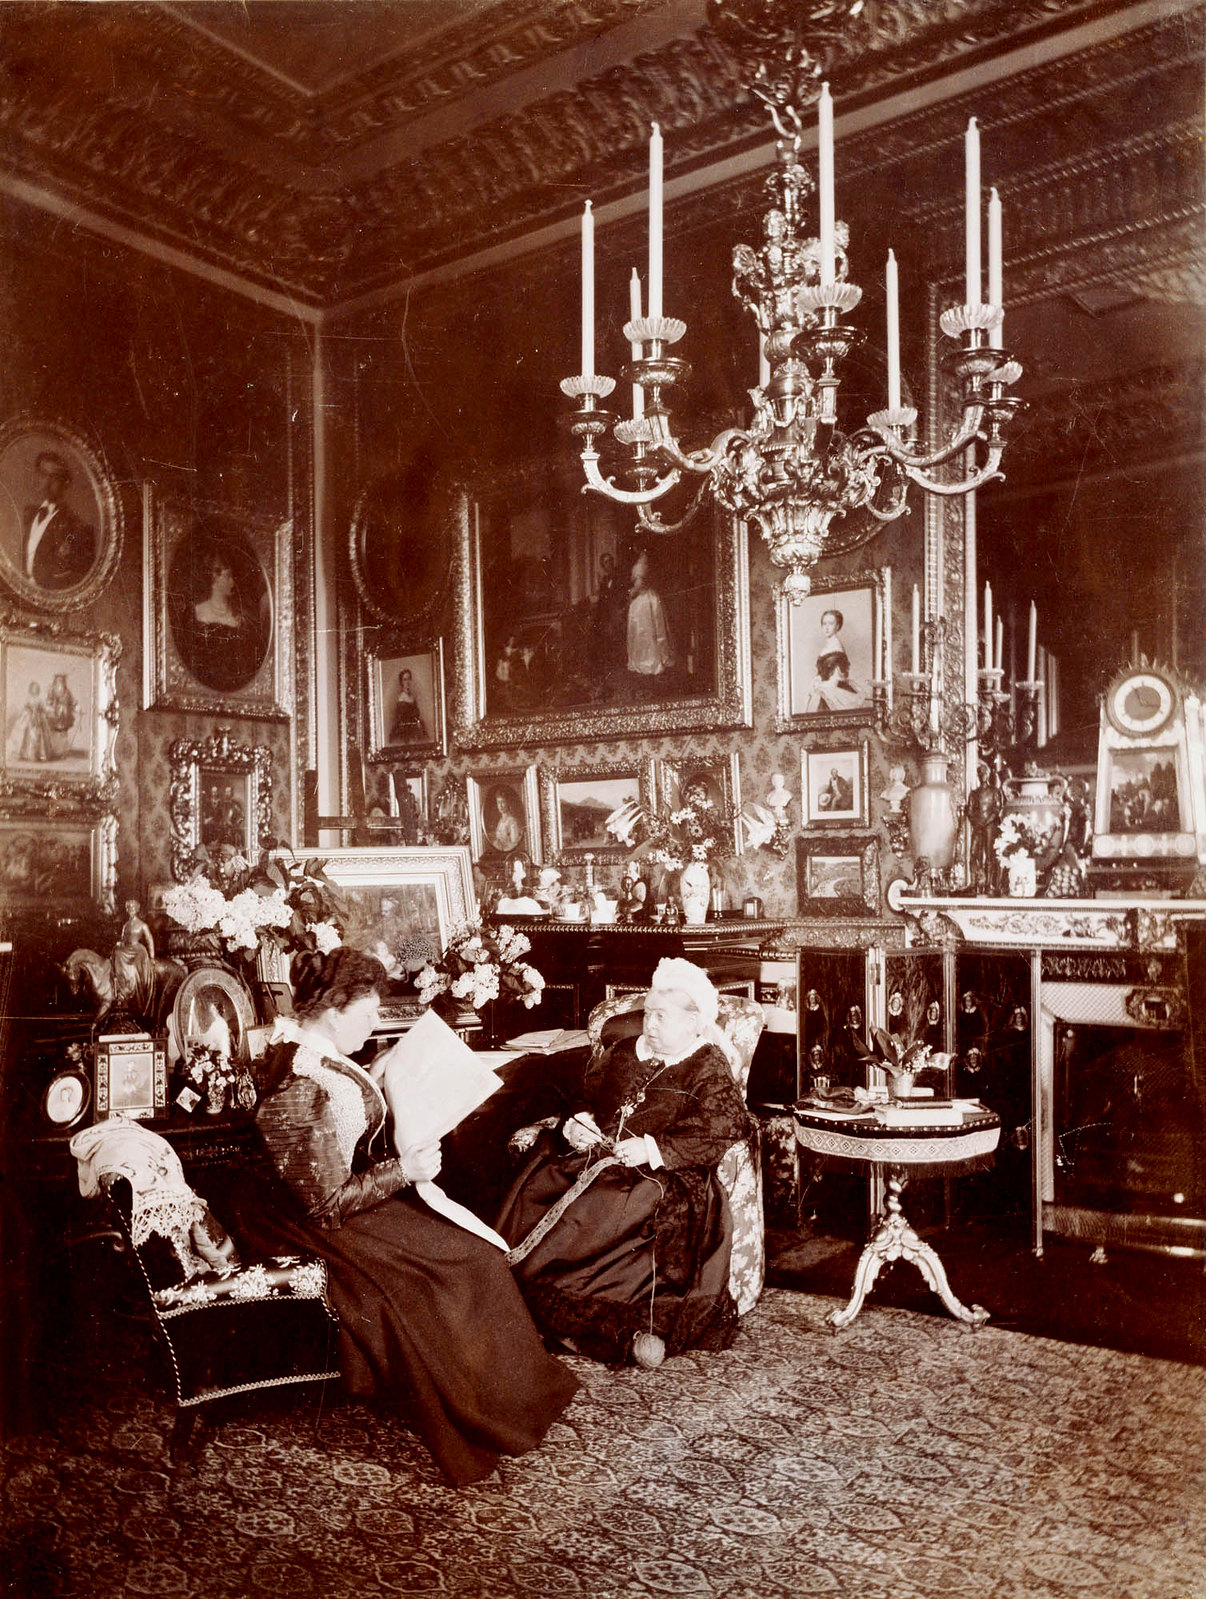 Queen Victoria and Princess Beatrice in the Queen's Sitting Room in 1895, photographed by Mary Steen